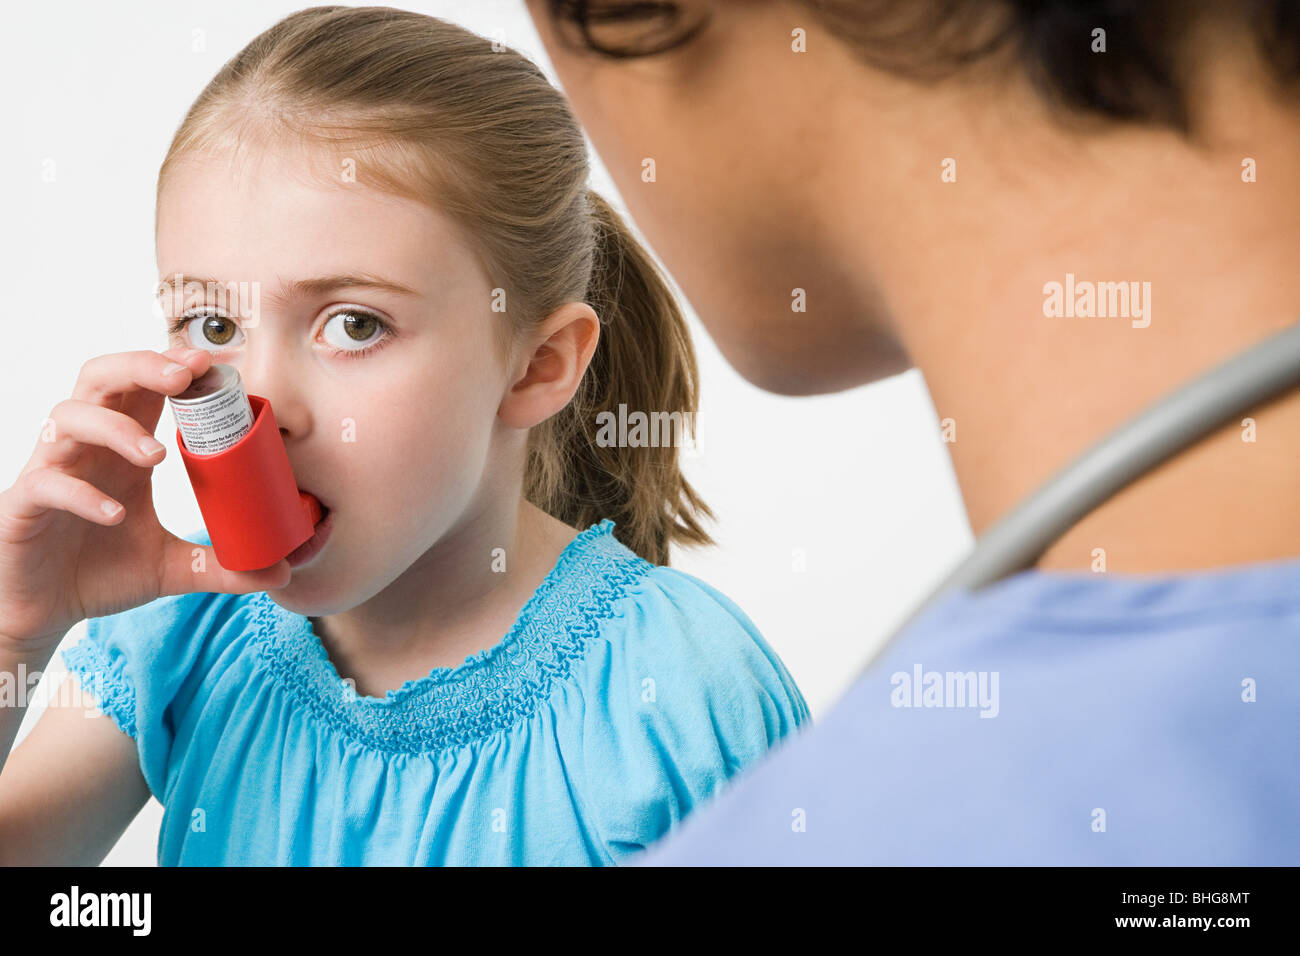 Girl taking asthma inhaler - Stock Image